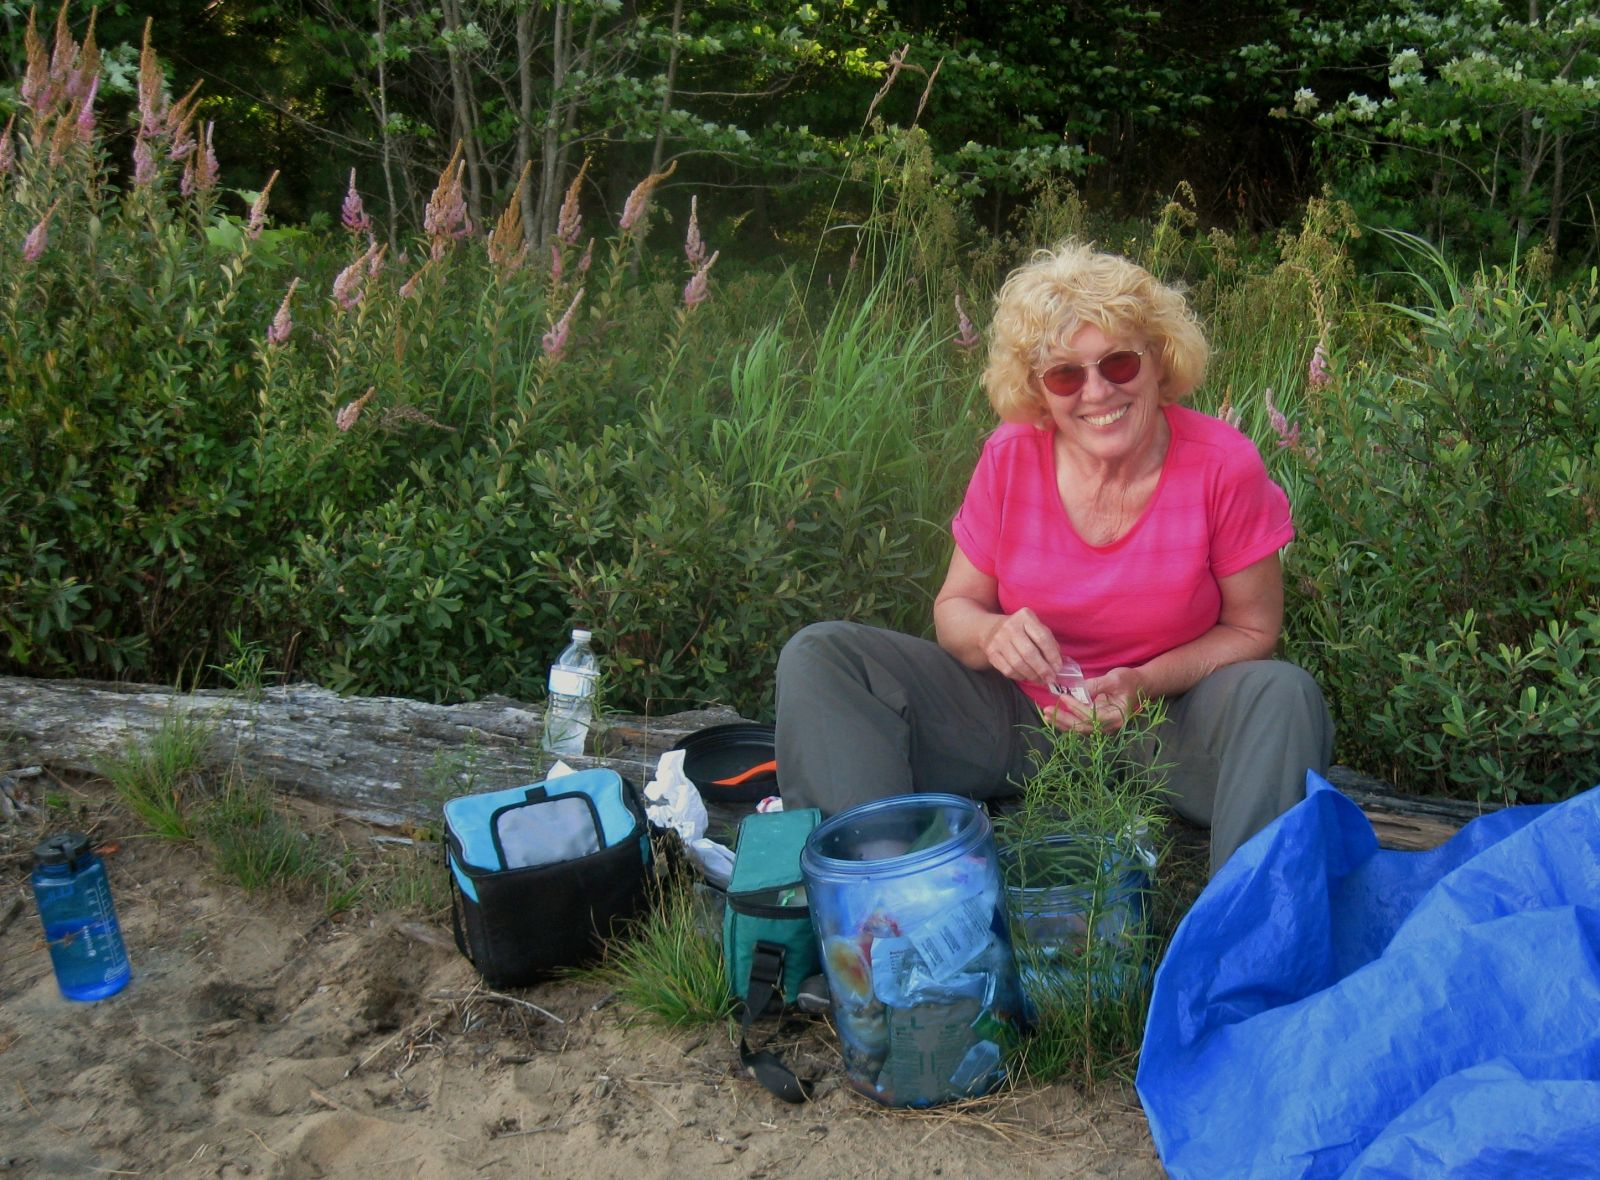 Peggy organizes the bear canisters!